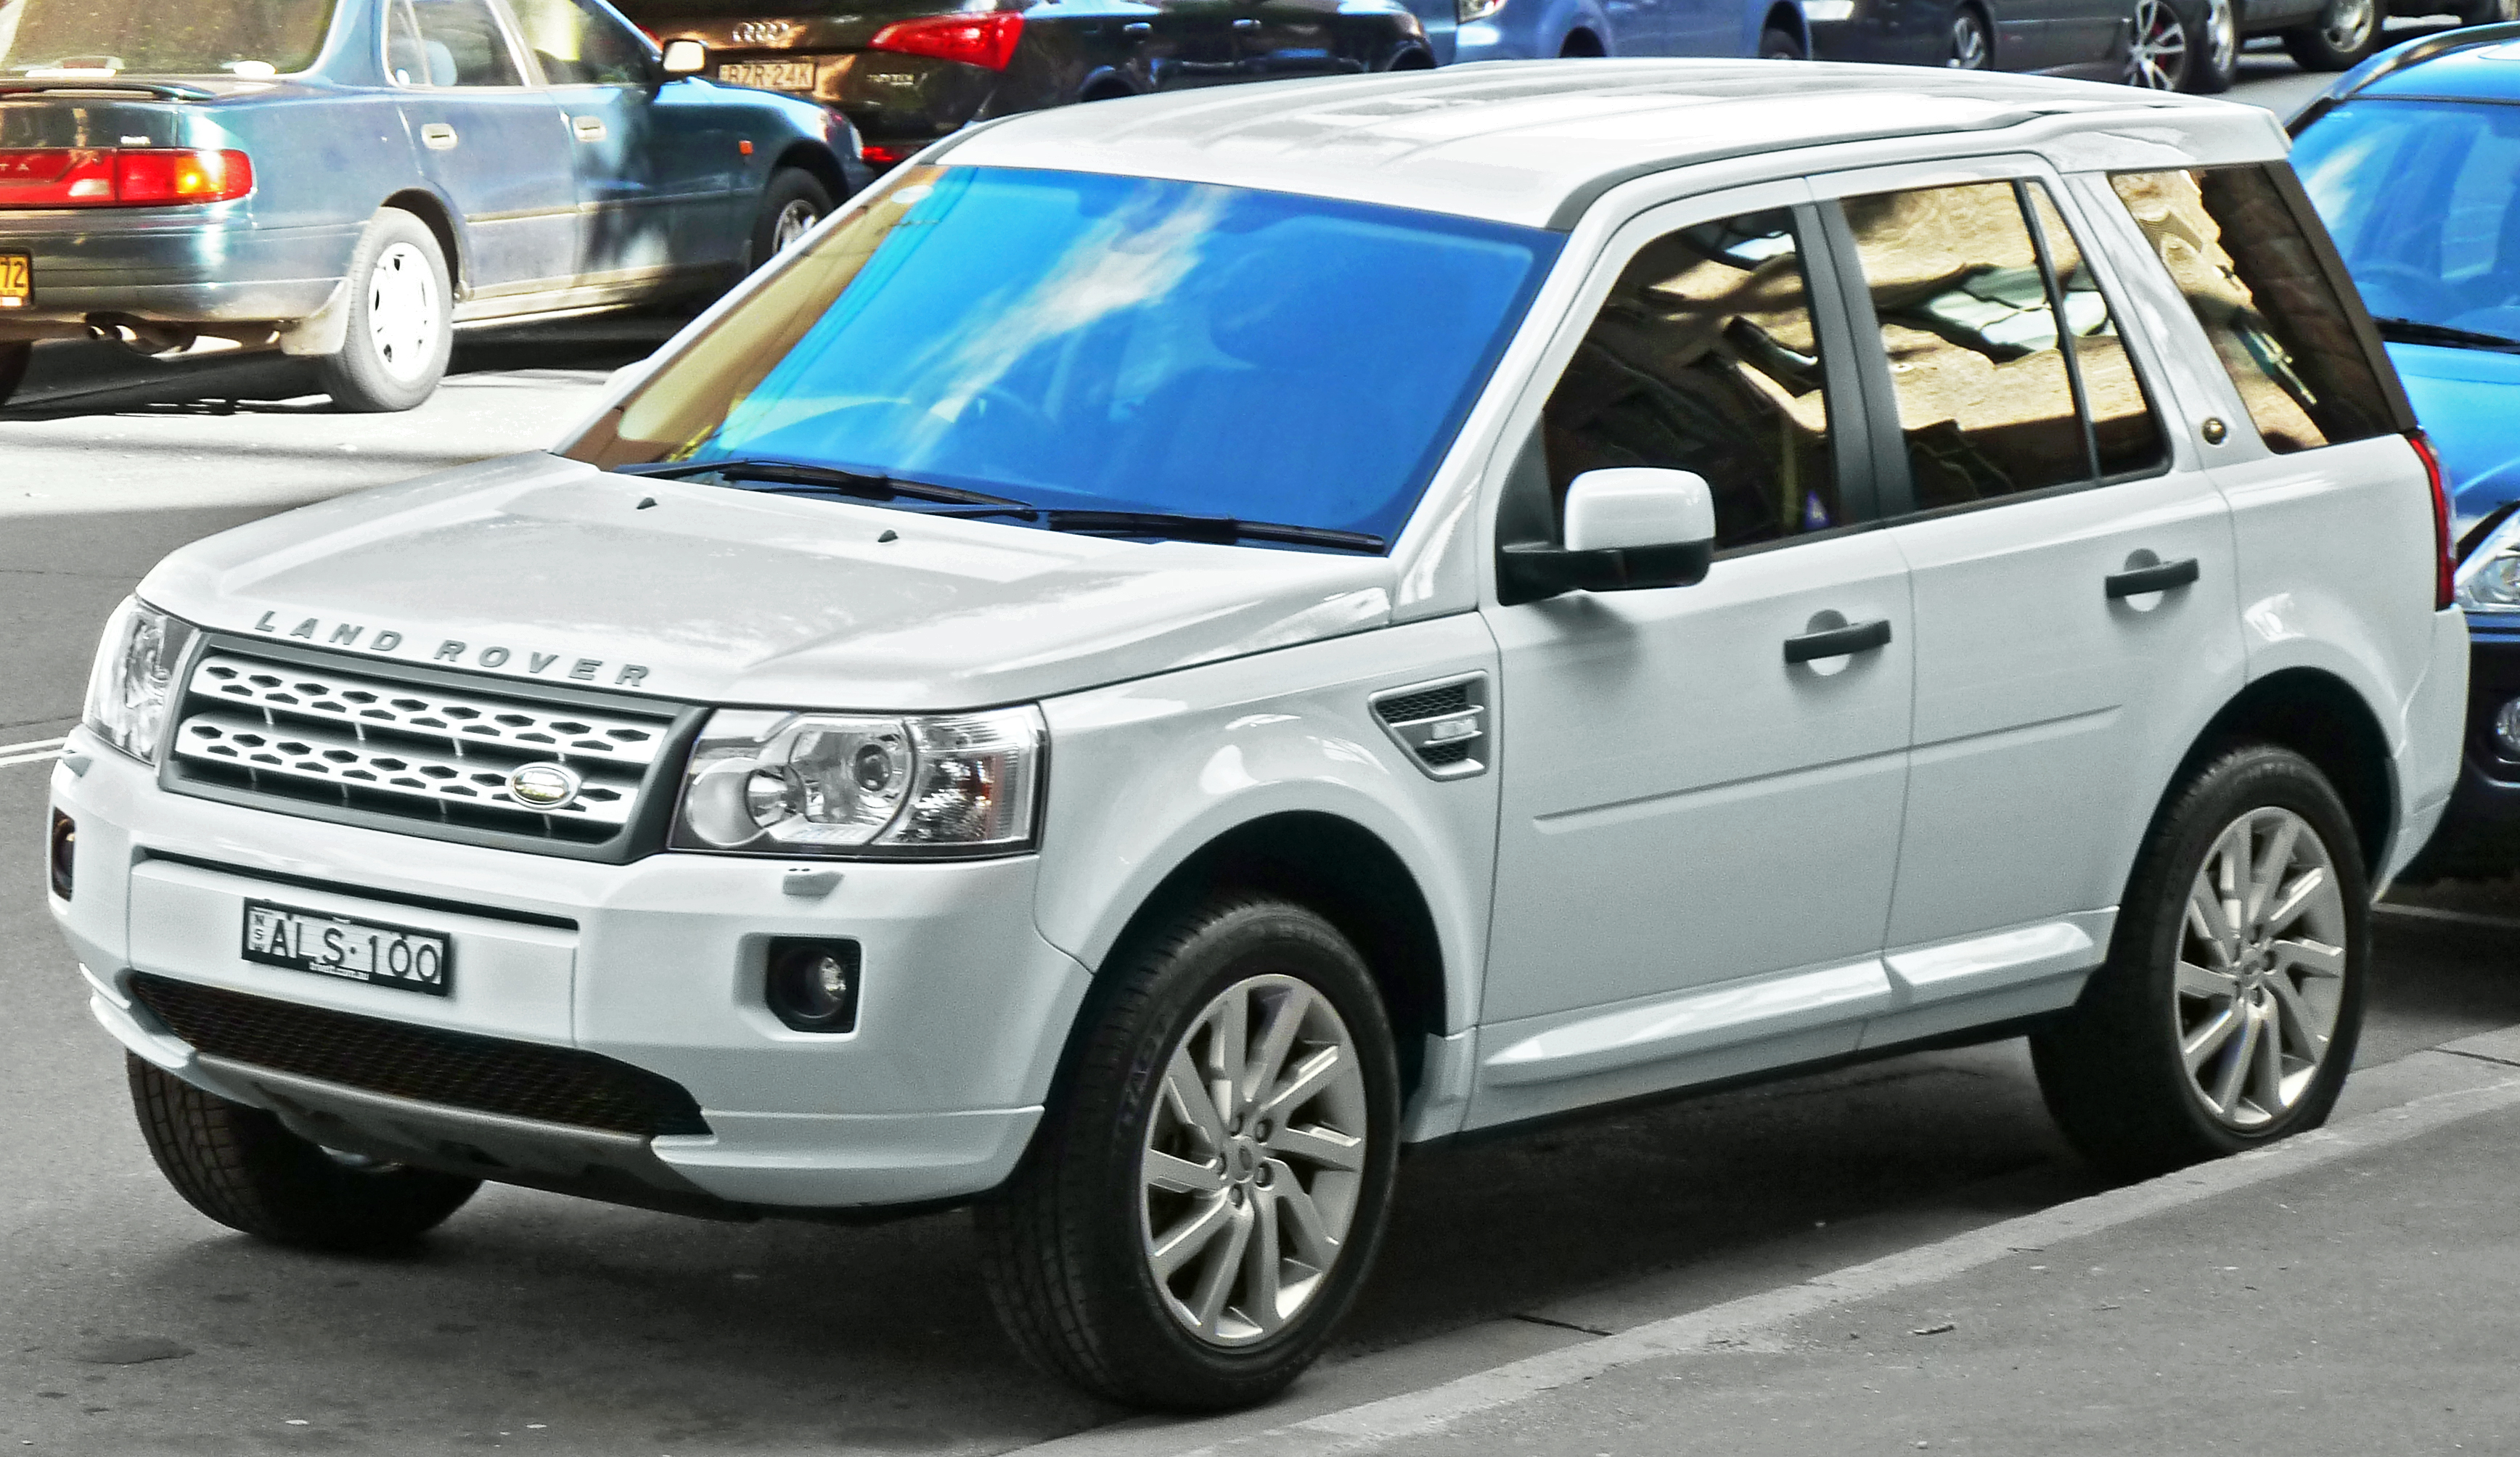 land rover freelander 2 wikiwand. Black Bedroom Furniture Sets. Home Design Ideas